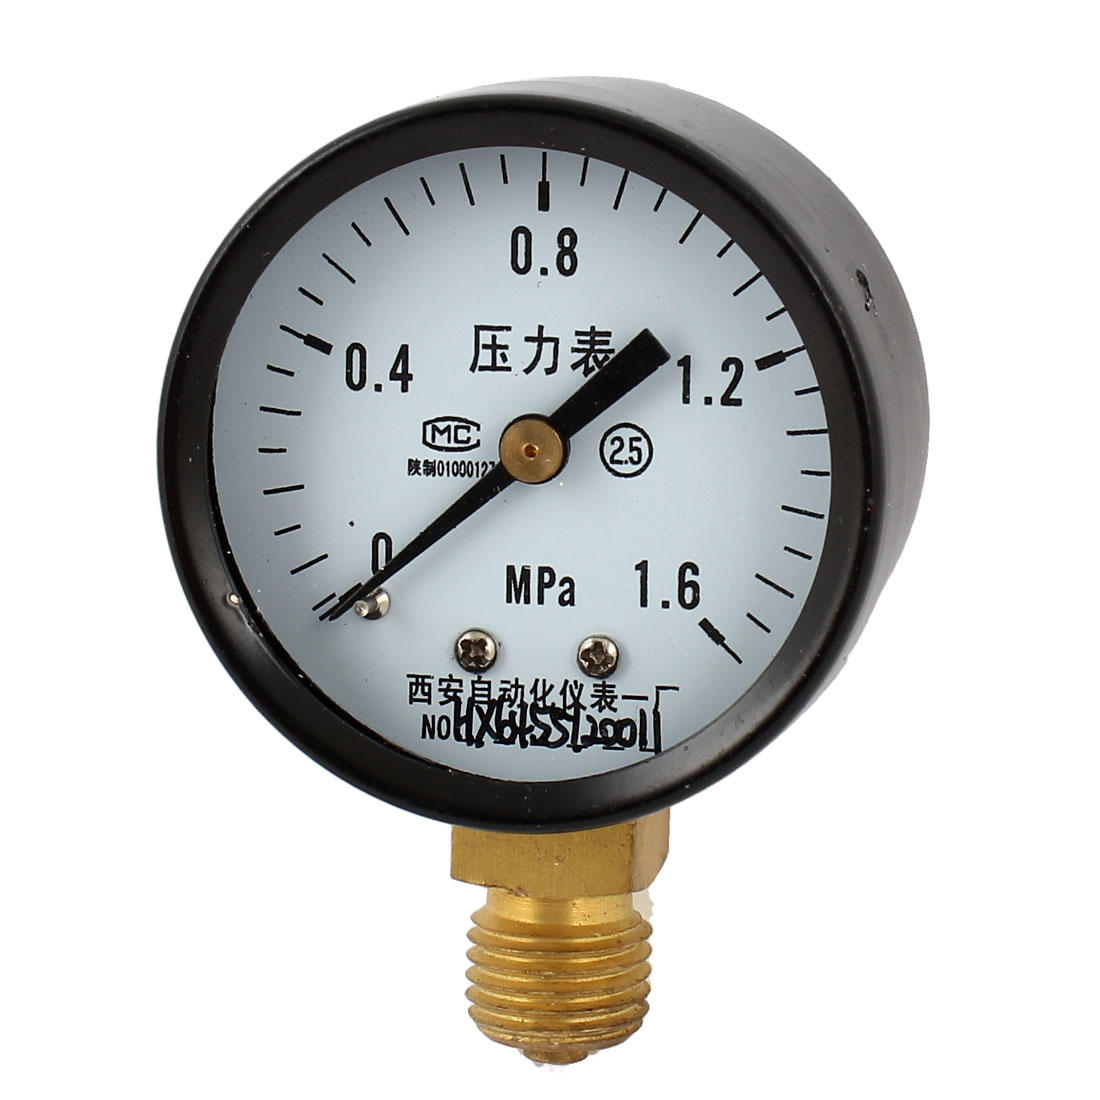 45mm Dial 1/4PT Male Threaded 0-1.6Mpa Pneumatic Air Pressure Measuring Gauge